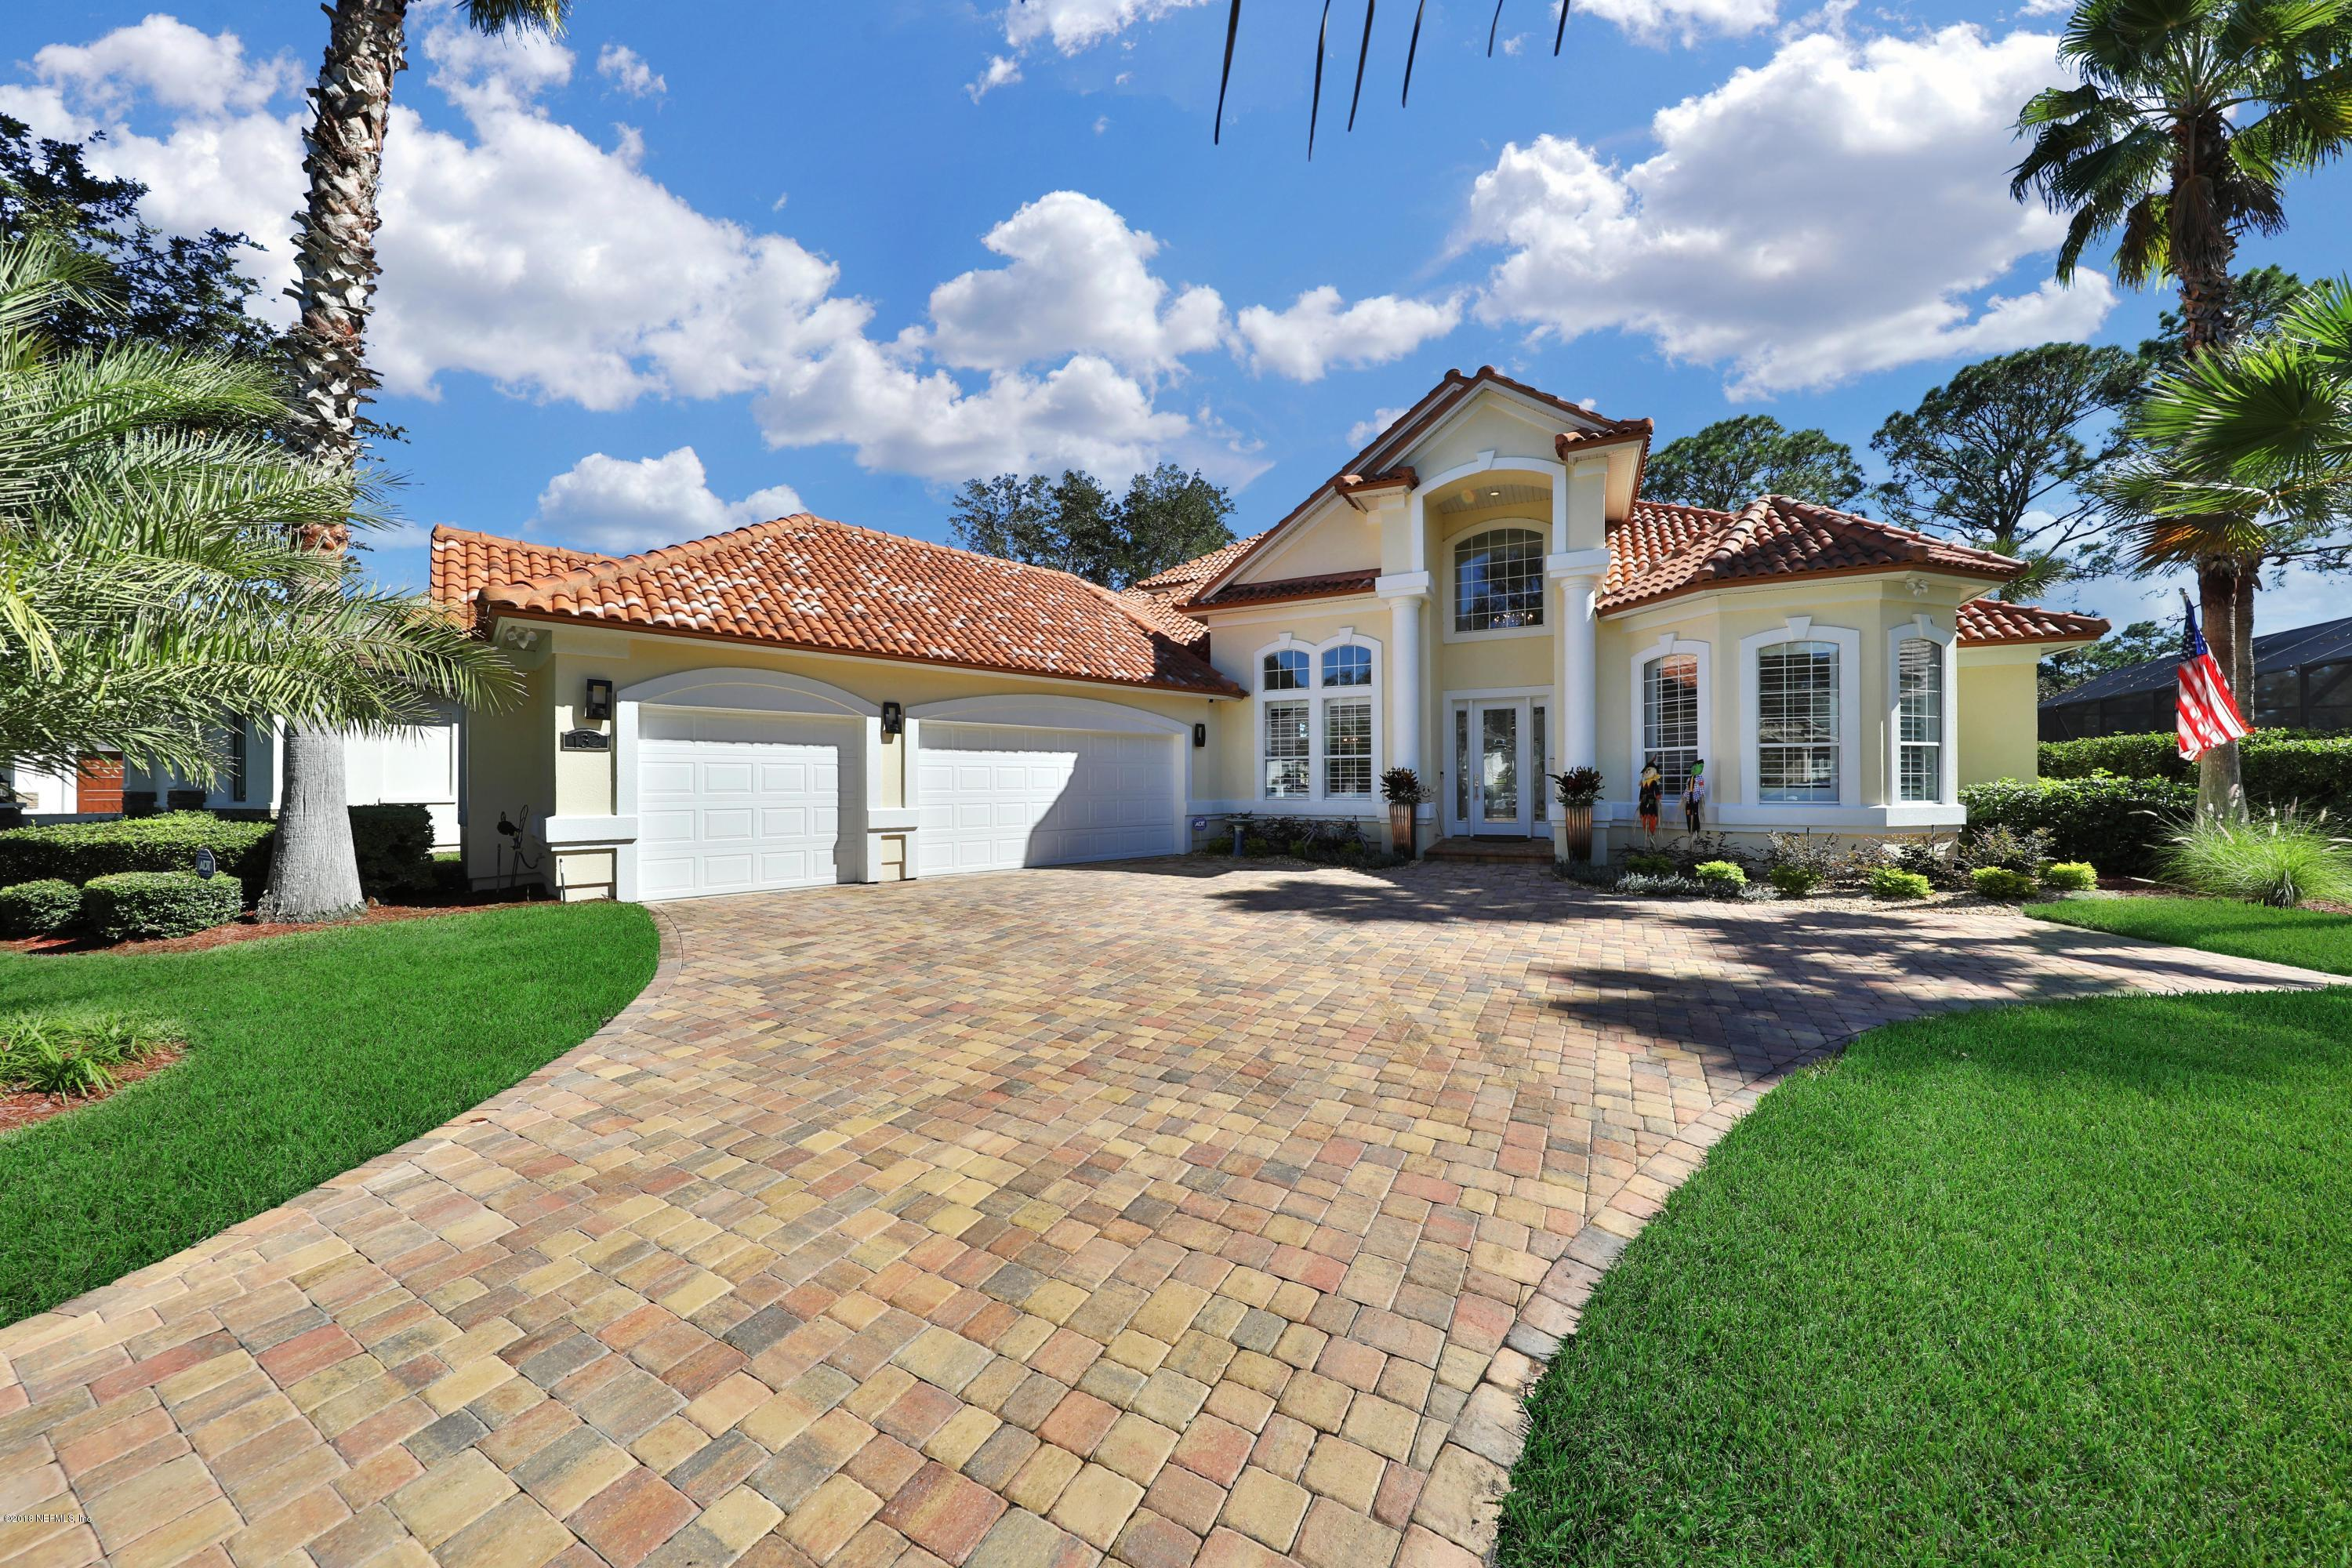 132 RETREAT, PONTE VEDRA BEACH, FLORIDA 32082, 4 Bedrooms Bedrooms, ,4 BathroomsBathrooms,Residential - single family,For sale,RETREAT,964973